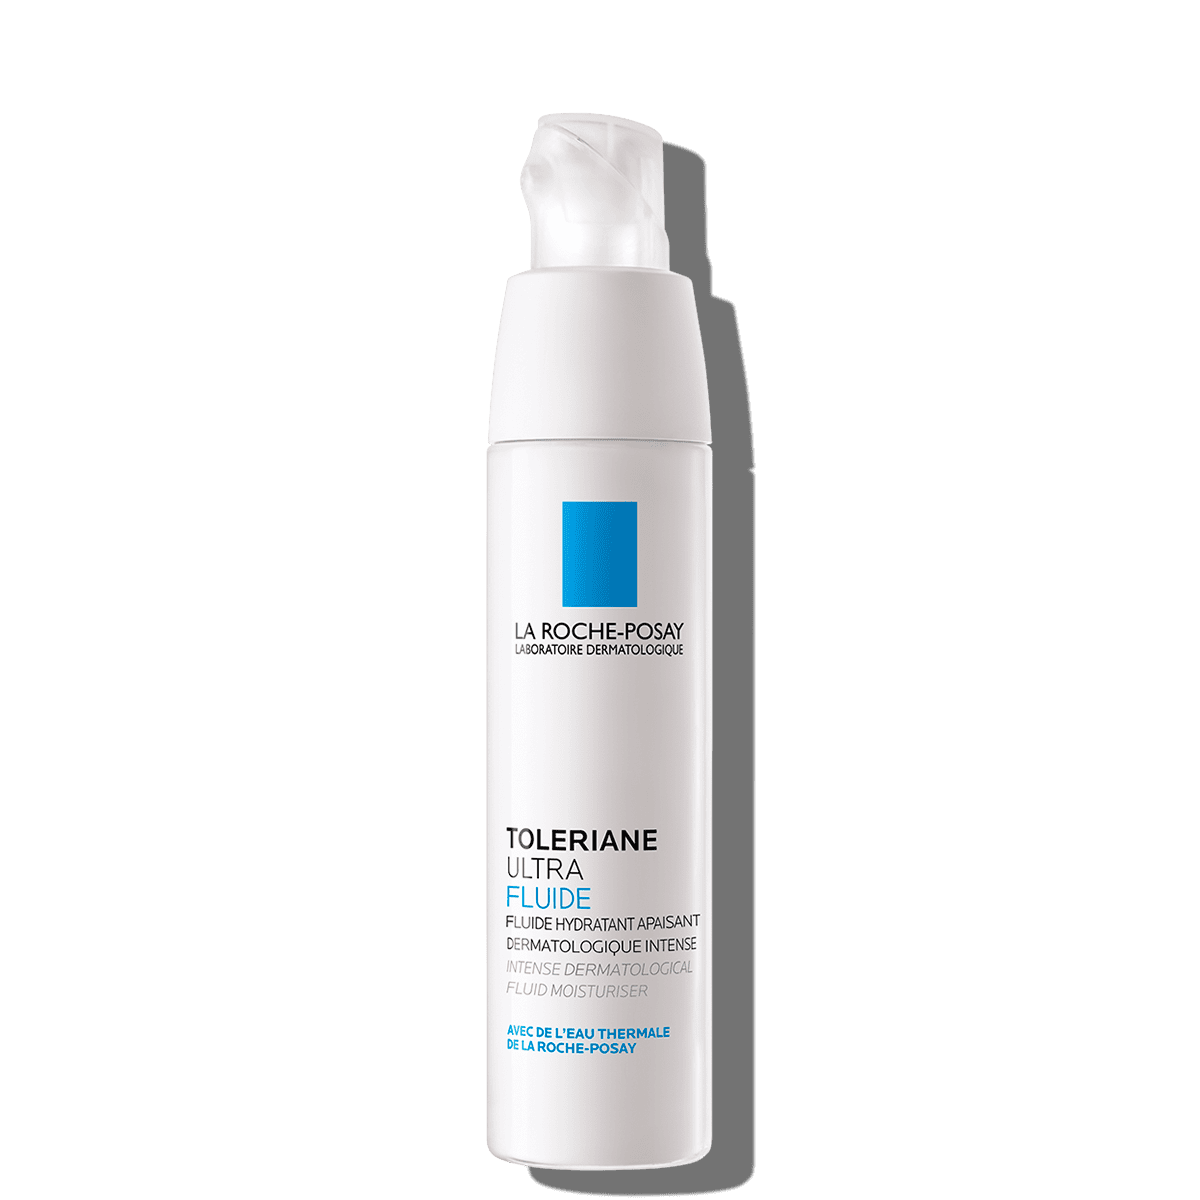 La Roche Posay ProductPage Sensitive Allergic Toleriane Ultra Fluide 4